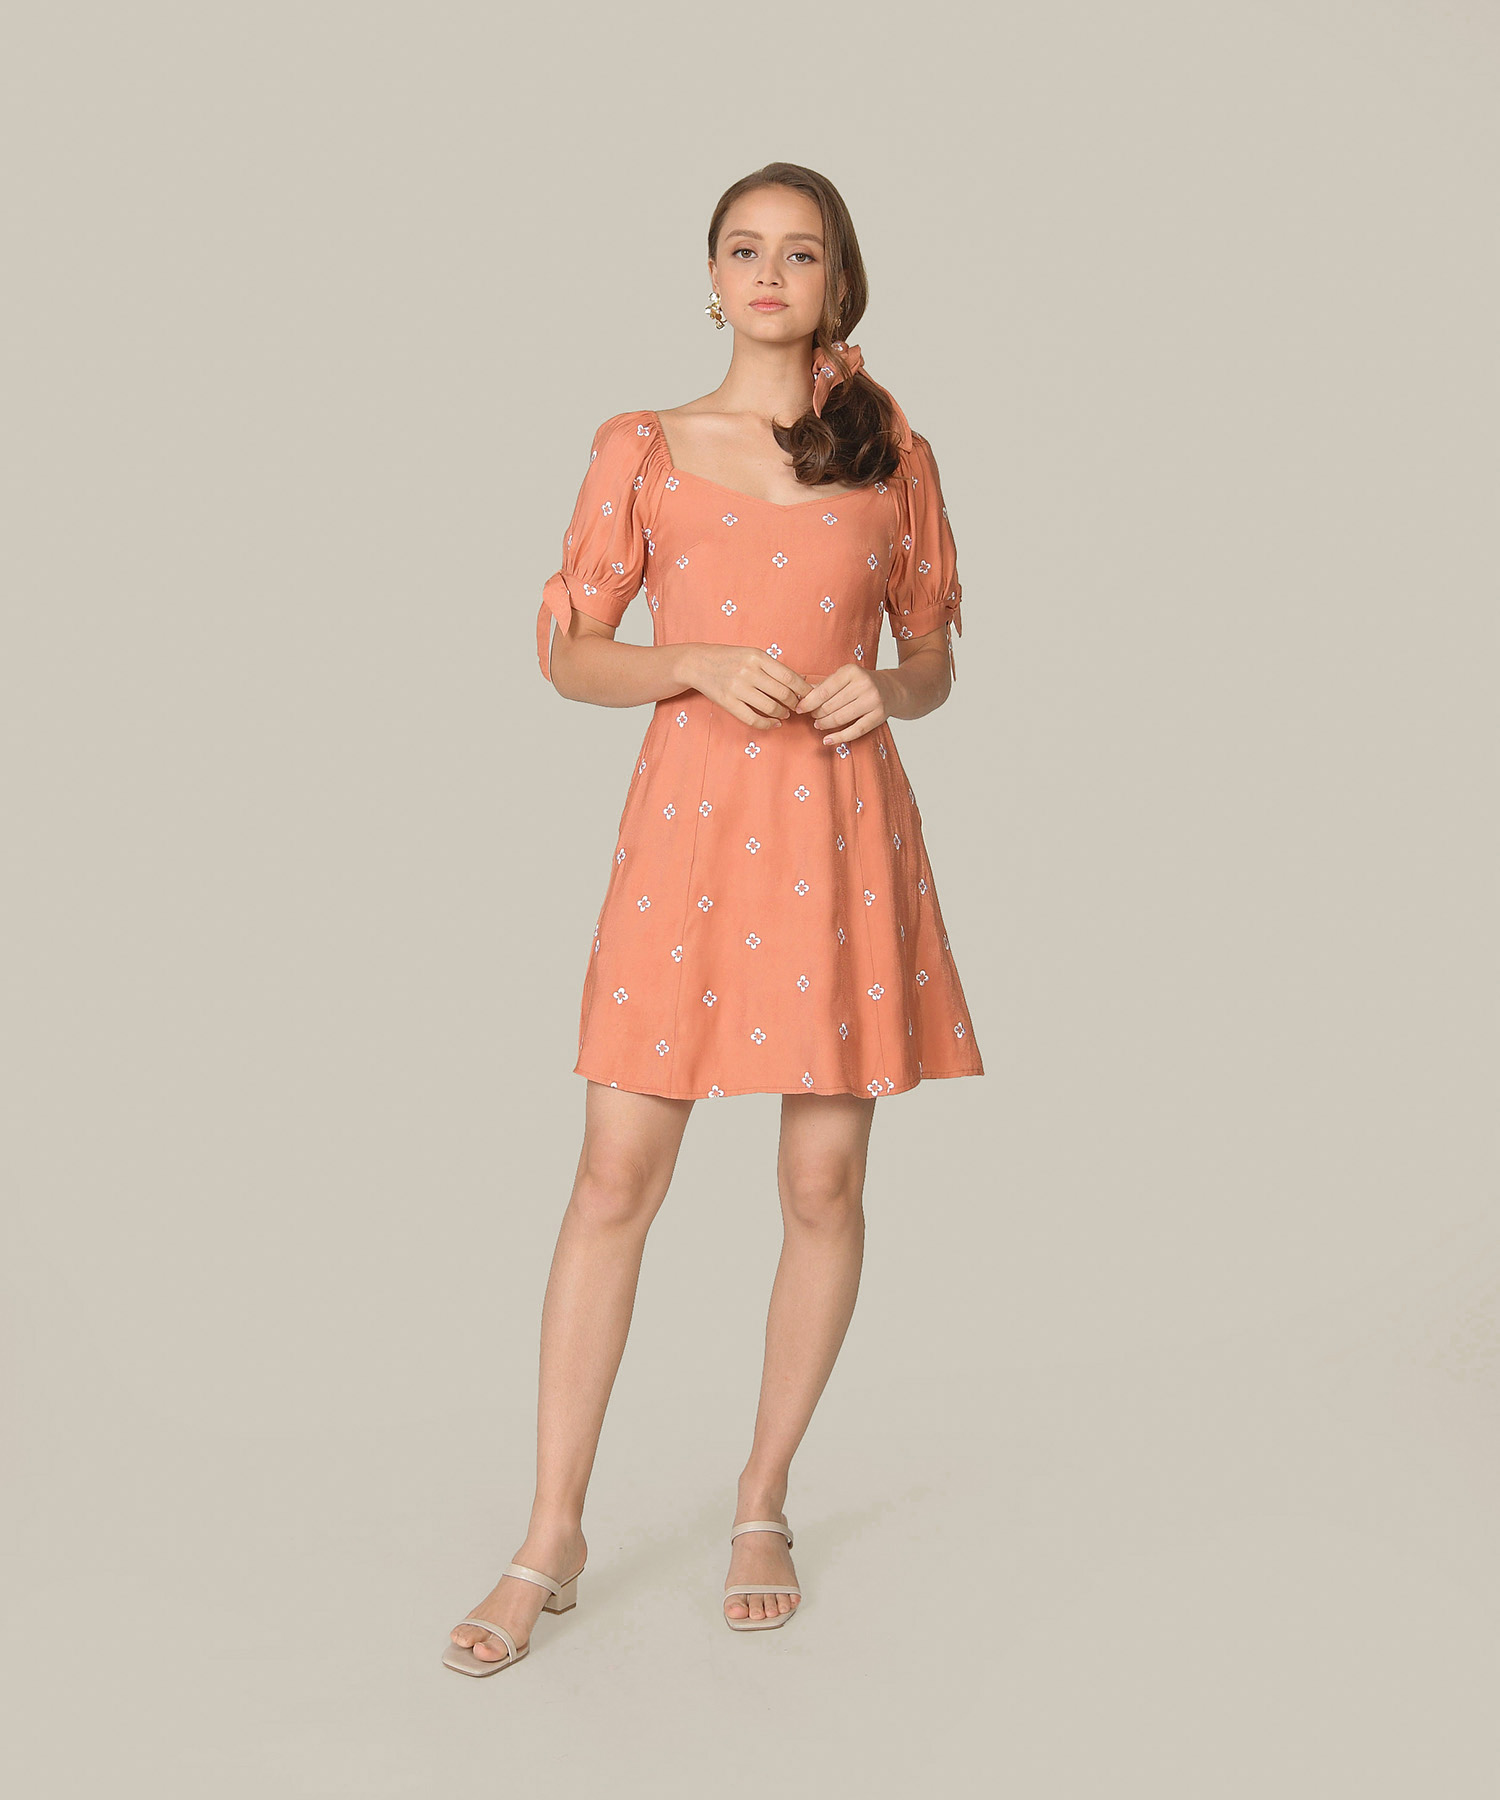 memento-embroidered-dress-coral-pink-1